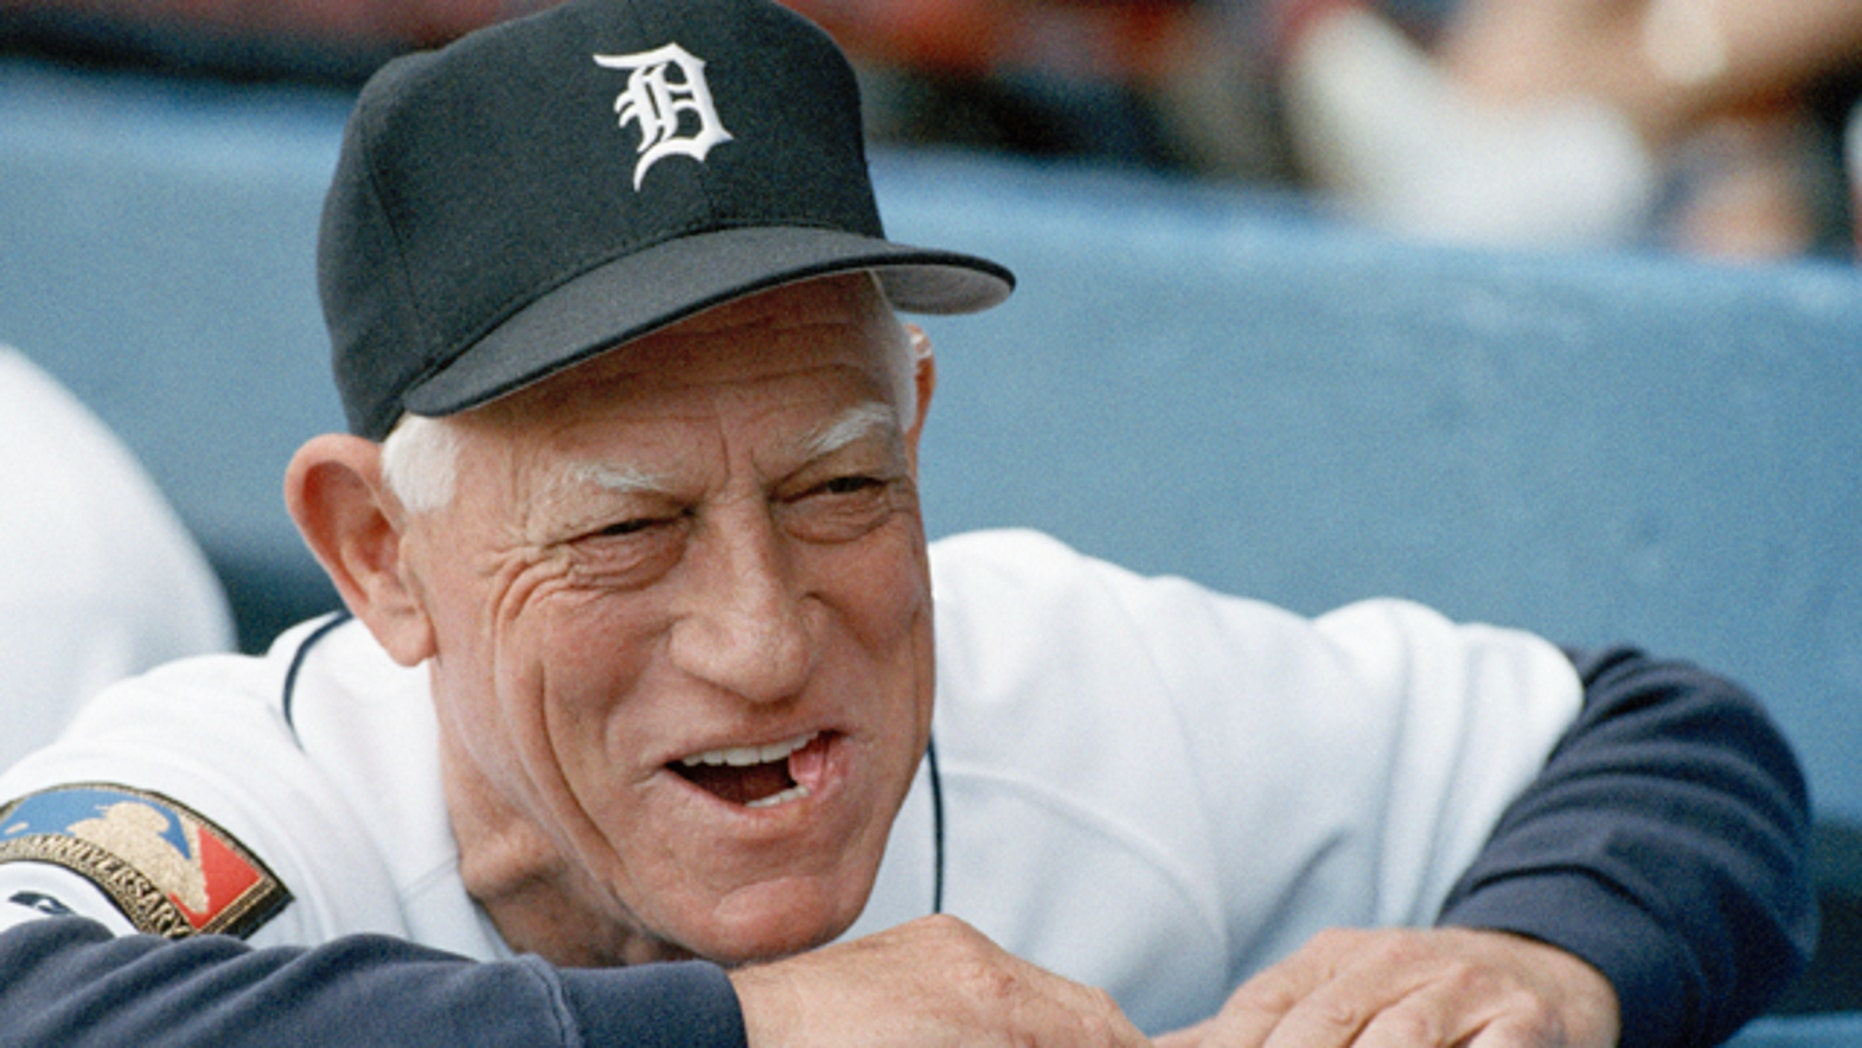 July 26, 1994:  Detroit Tigers manager Sparky Anderson smiling as he looks out from the dugout prior to the start of a baseball game against the Seattle Mariners in Detroit.